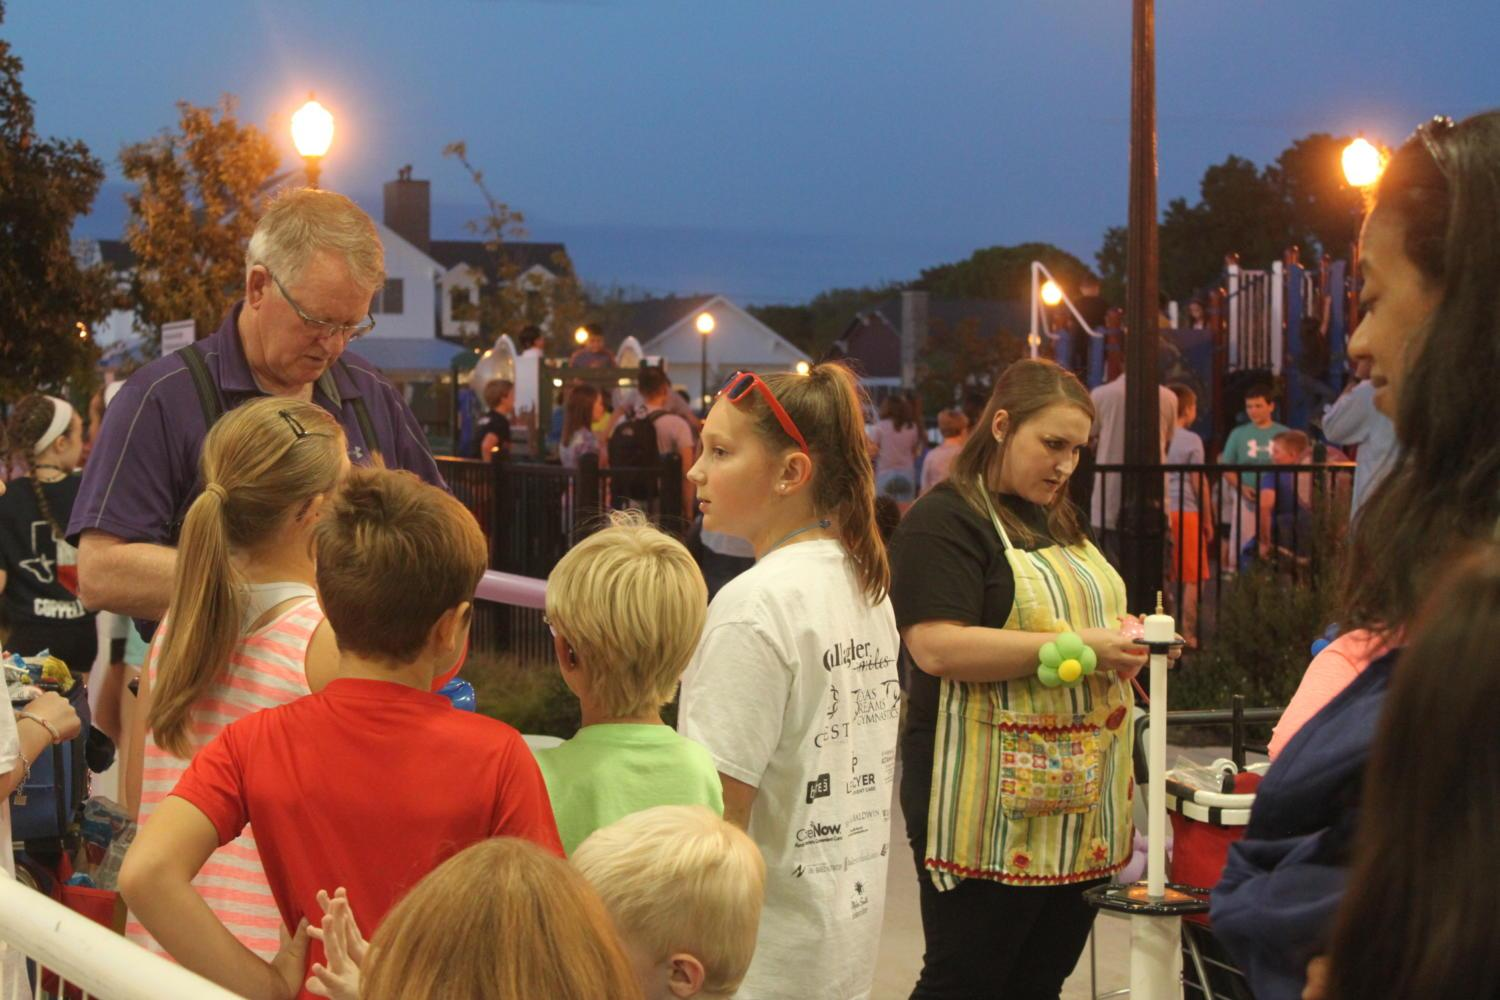 Last+Saturday%2C+Sept.+30%2C+the+annual+Food+Truck+Frenzy+was+held+at+The+Square+at+Old+Town%2C+768+W.+Main+Street+from+5-9+p.m.+Many+kids+gather+towards+the+shed+at+The+Square+at+Old+Town+to+get+their+balloon+art+and+enjoy+the+evening.+